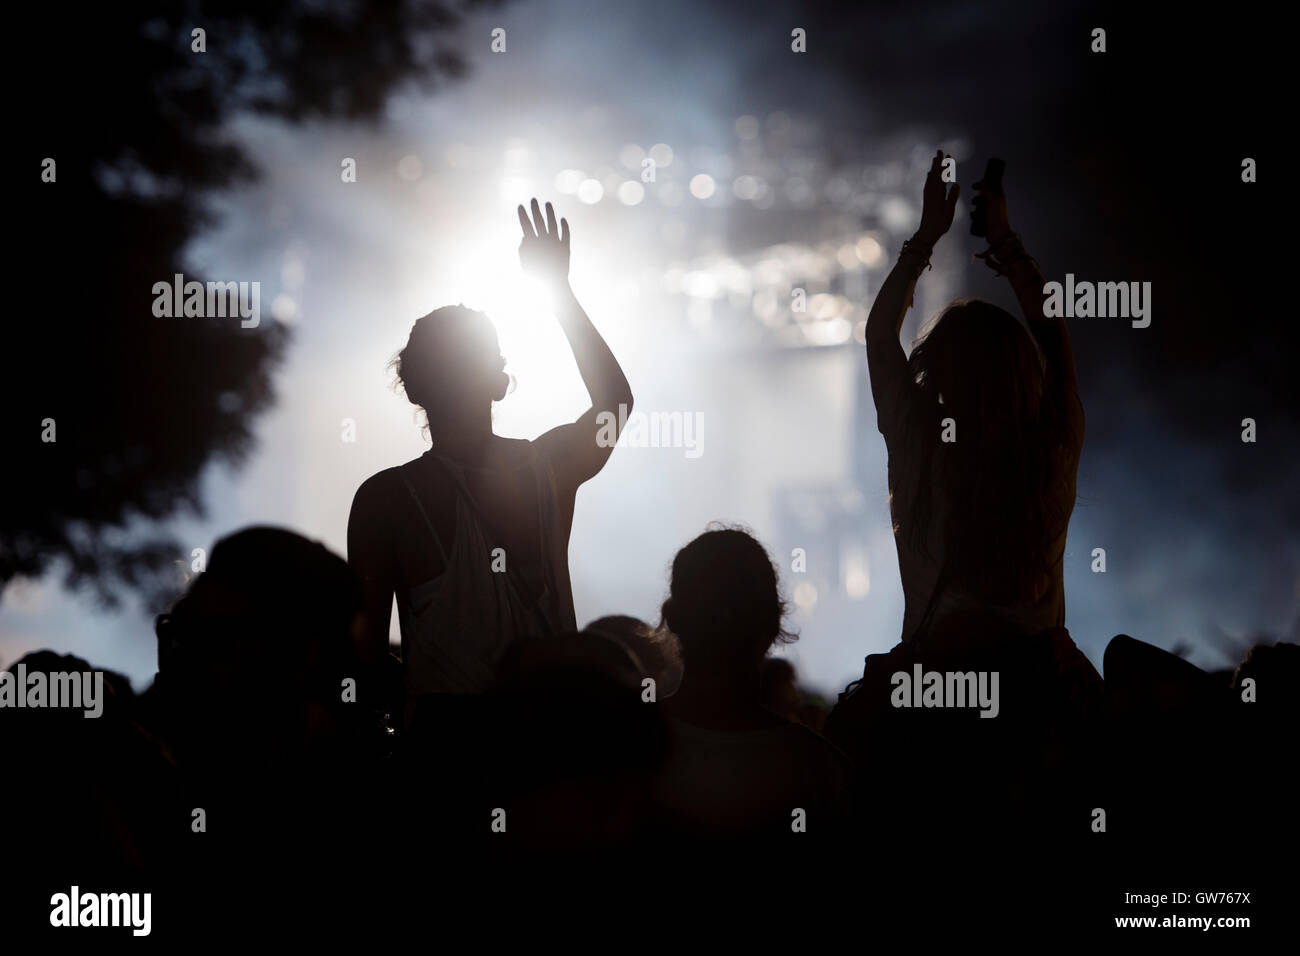 Berlin, Germany. 11th Sep, 2016. Visitors watch a concert at the Lollapalooza Festival in Berlin, Germany, 11 September - Stock Image